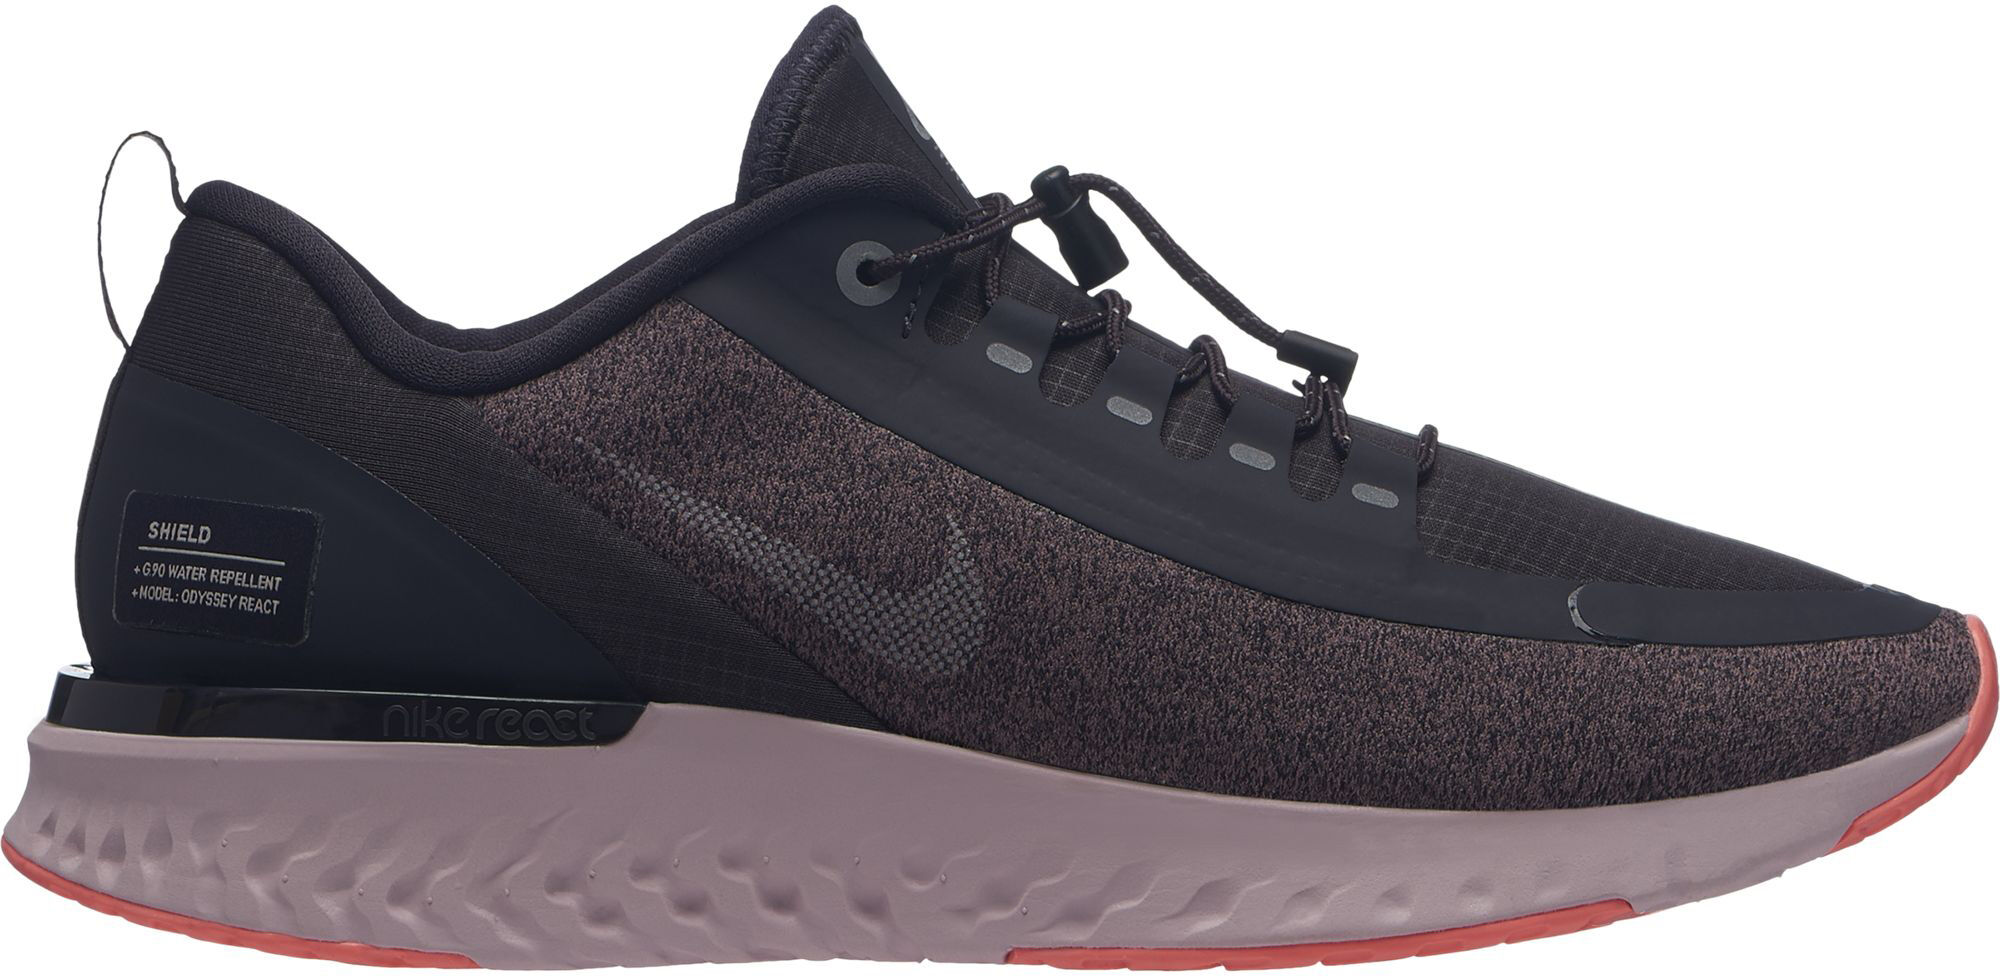 reputable site 97a7c 10234 real nike odyssey react shield mujer negro bdbcc 8c90b